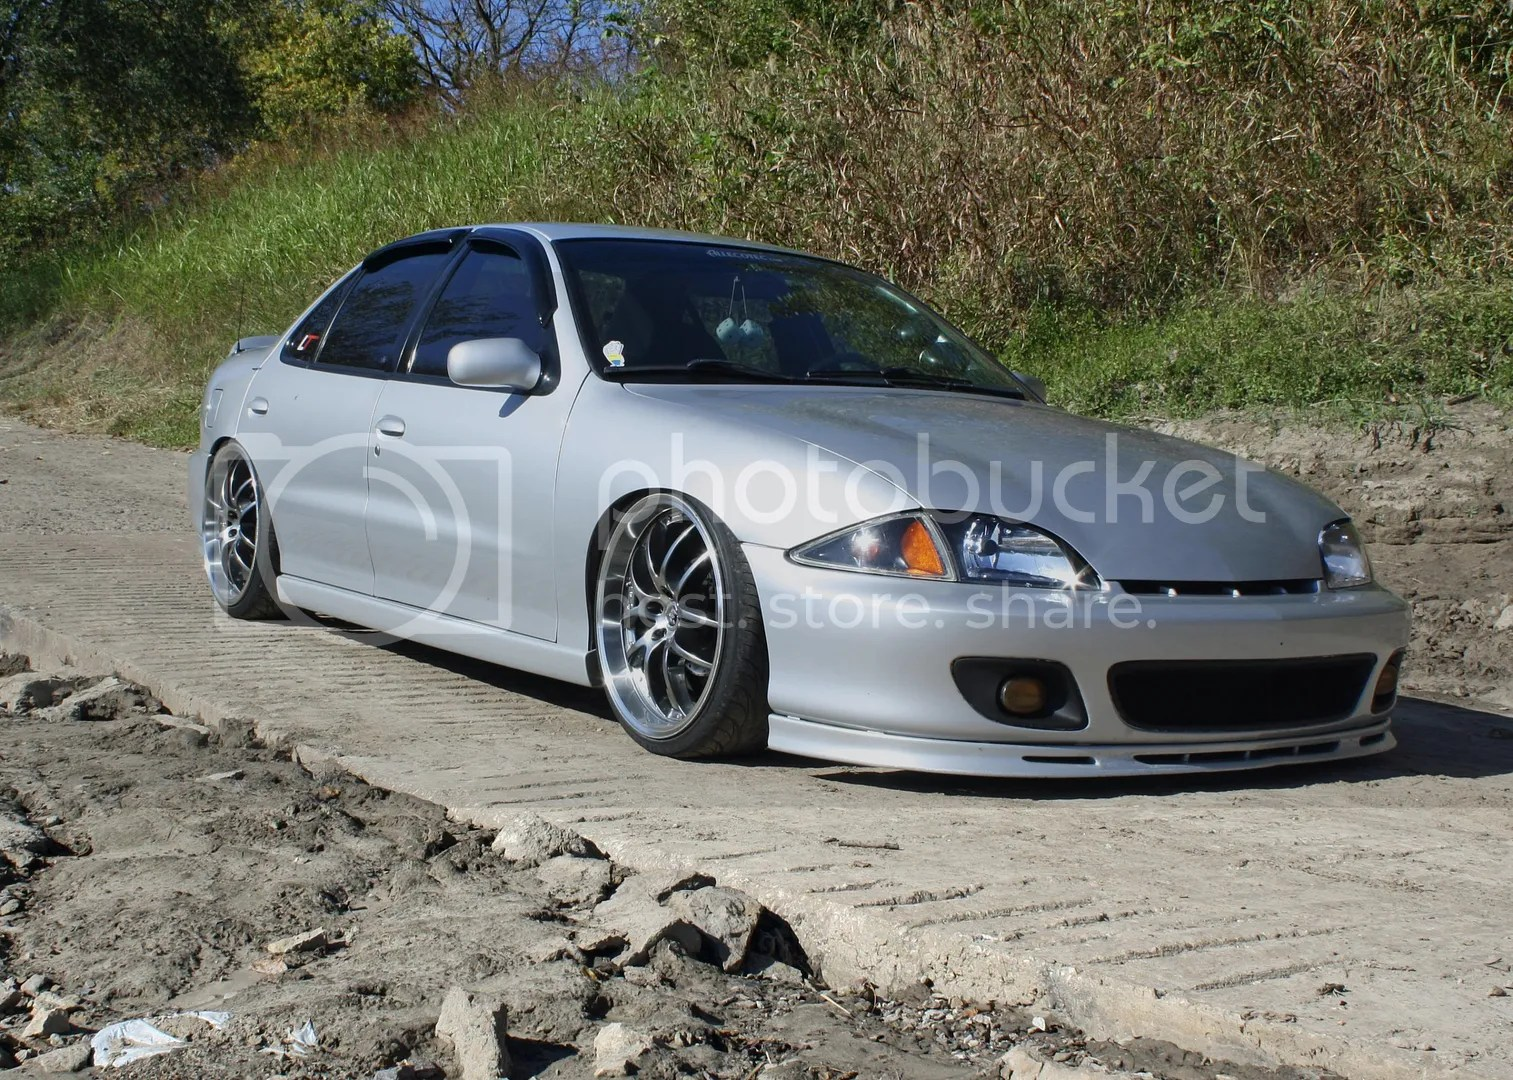 hight resolution of 99 chevy cavalier body kit